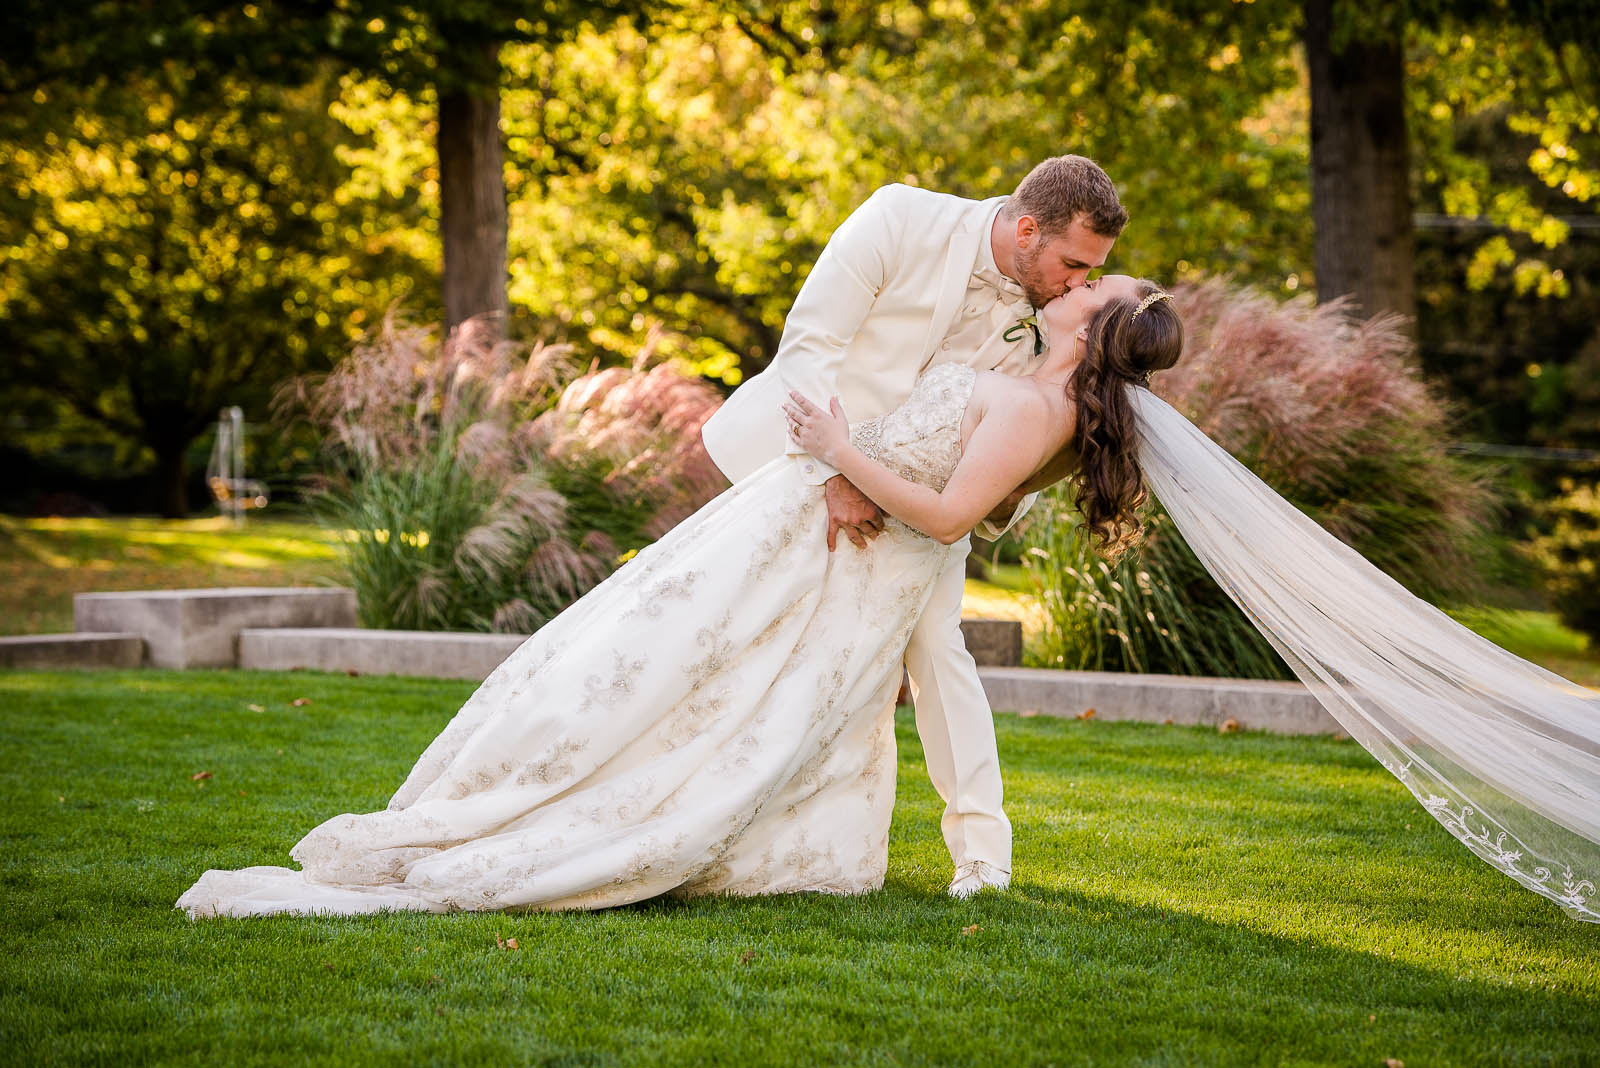 Eric_and_Christy_Photography_Blog_Wedding_Eva_Andrew-30